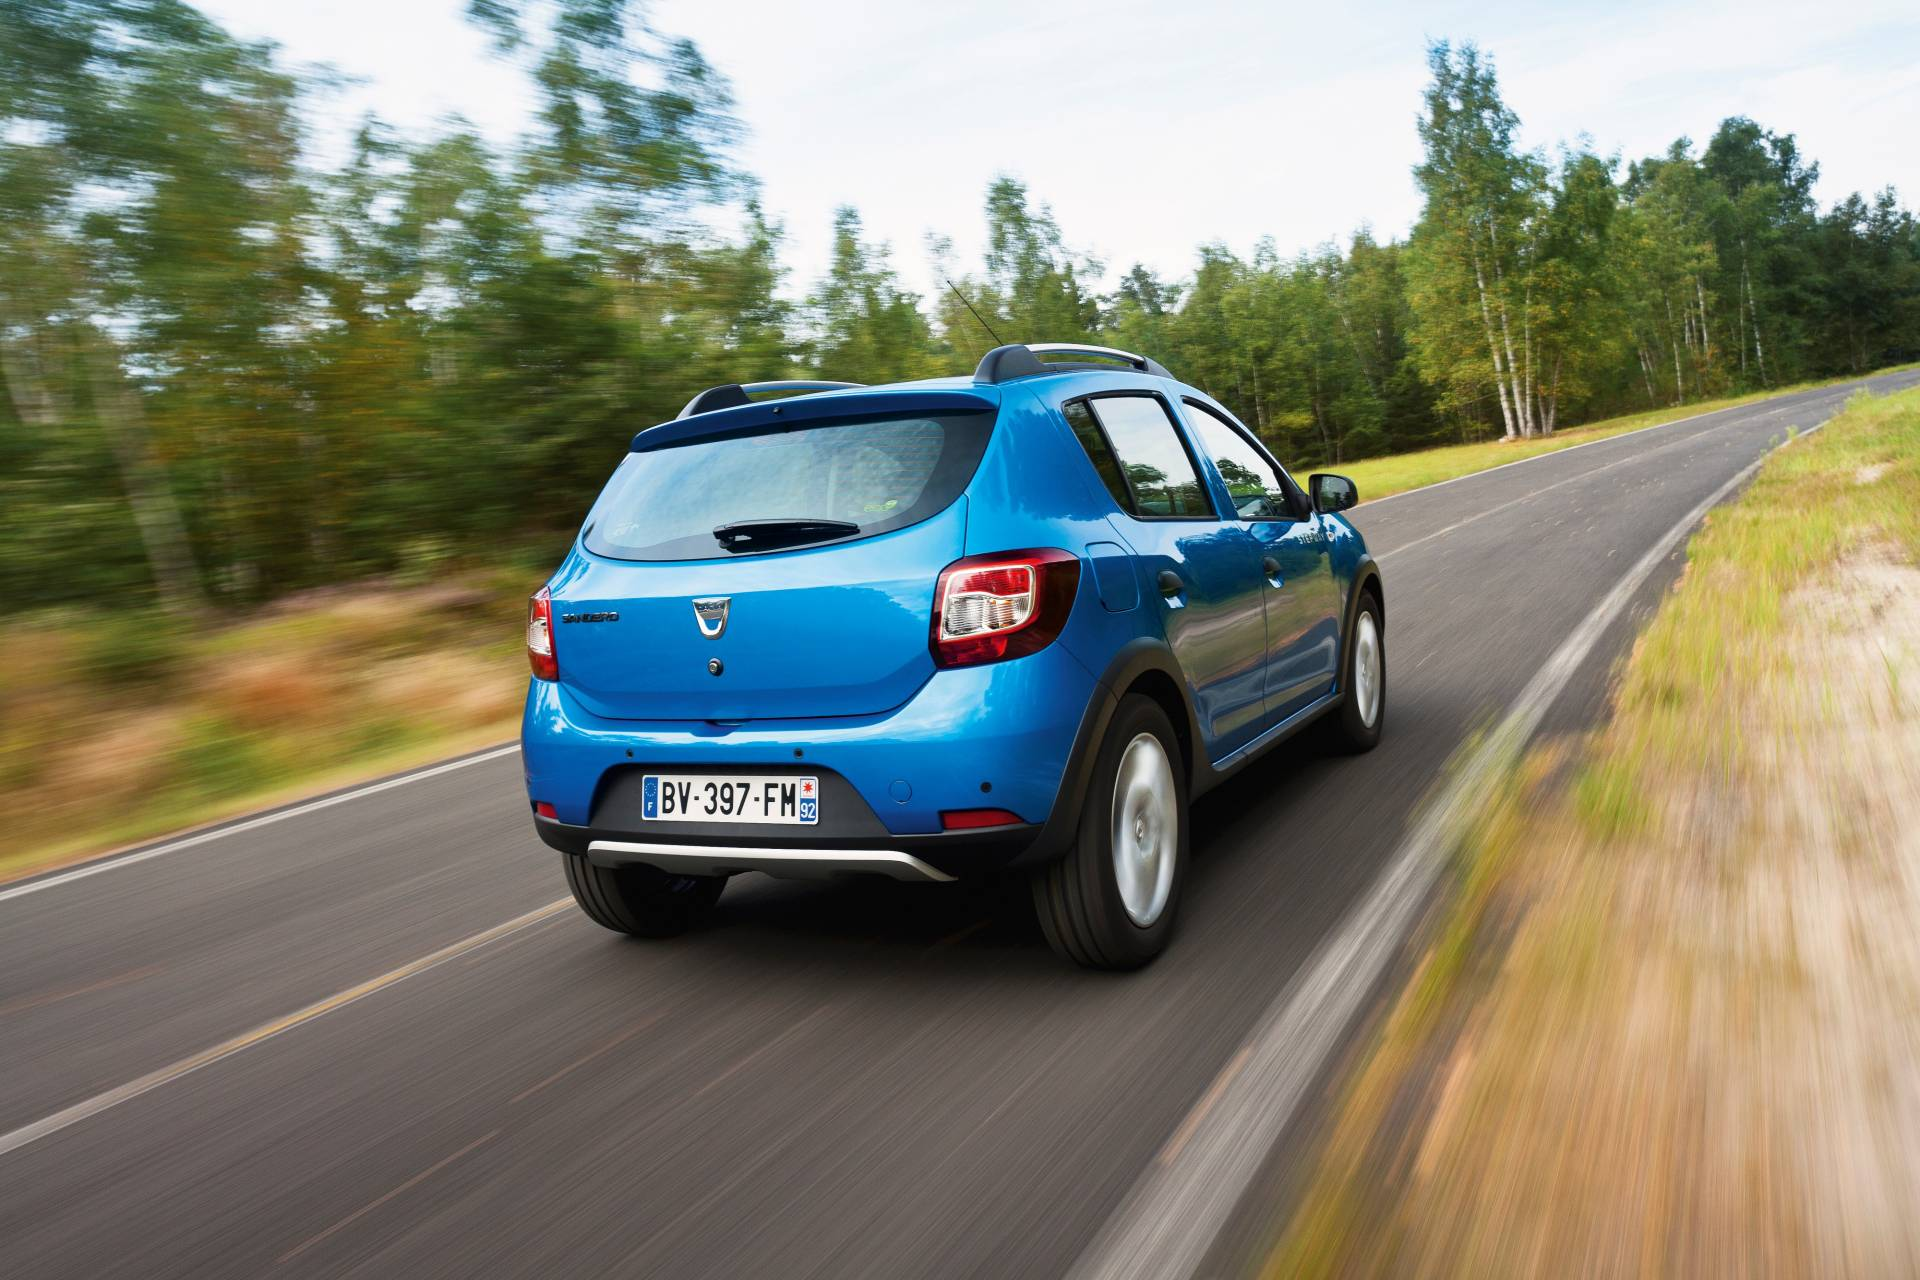 dacia sandero stepway 2013 - photo #4